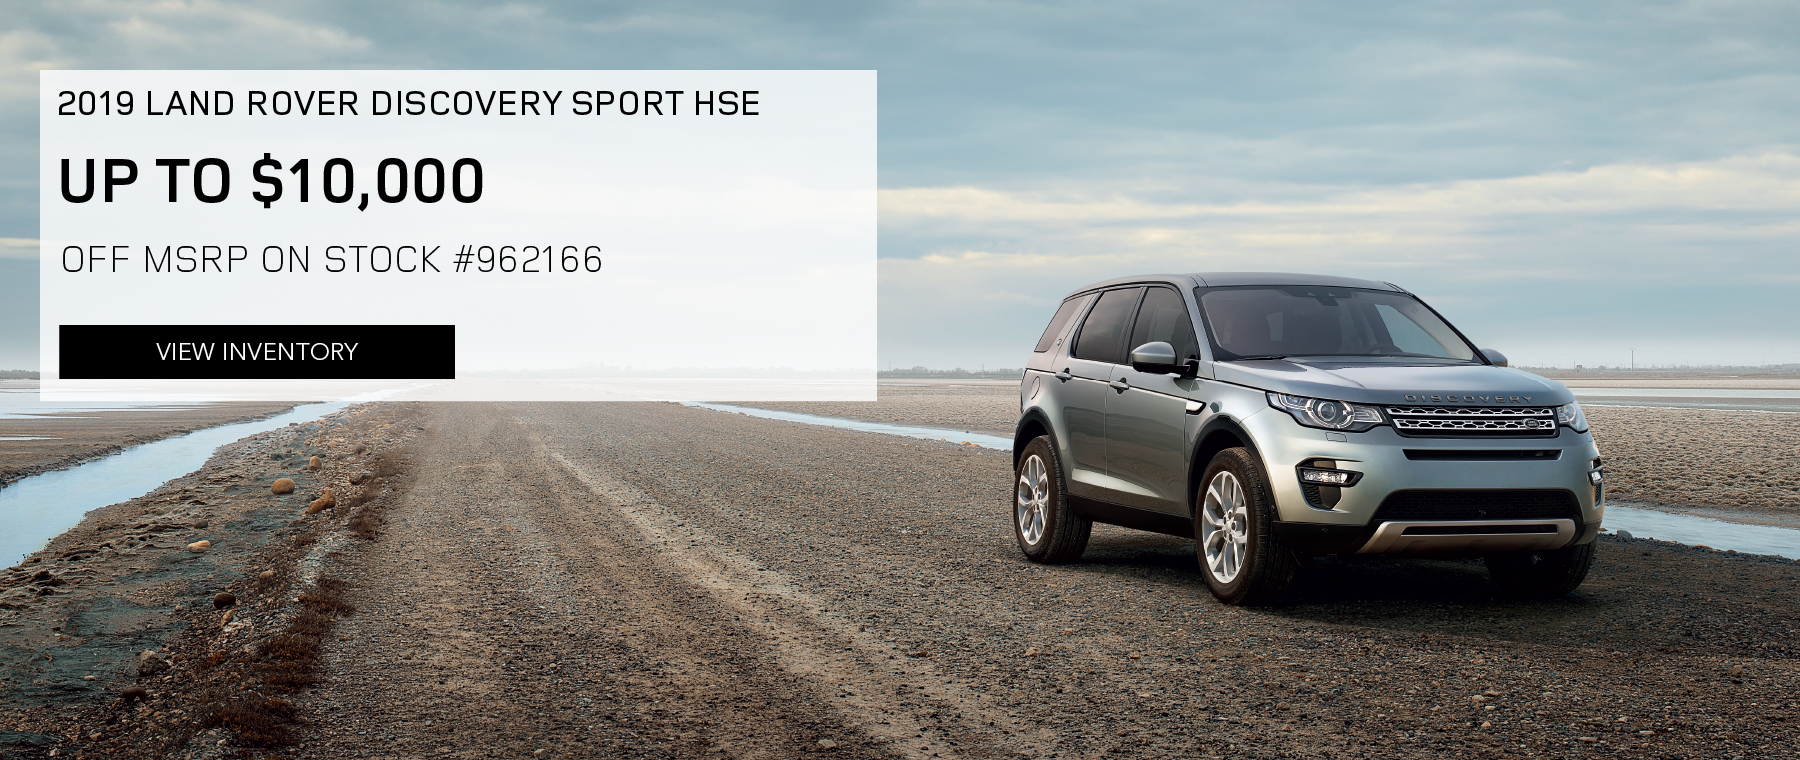 2019 LAND ROVER DISCOVERY SPORT HSE. UP TO $10,000 OFF MSRP ON STOCK NUMBER 962166. VIEW INVENTORY. LIGHT BLUE LAND ROVER DISCOVERY SPORT PARKED ON DIRT ROAD.